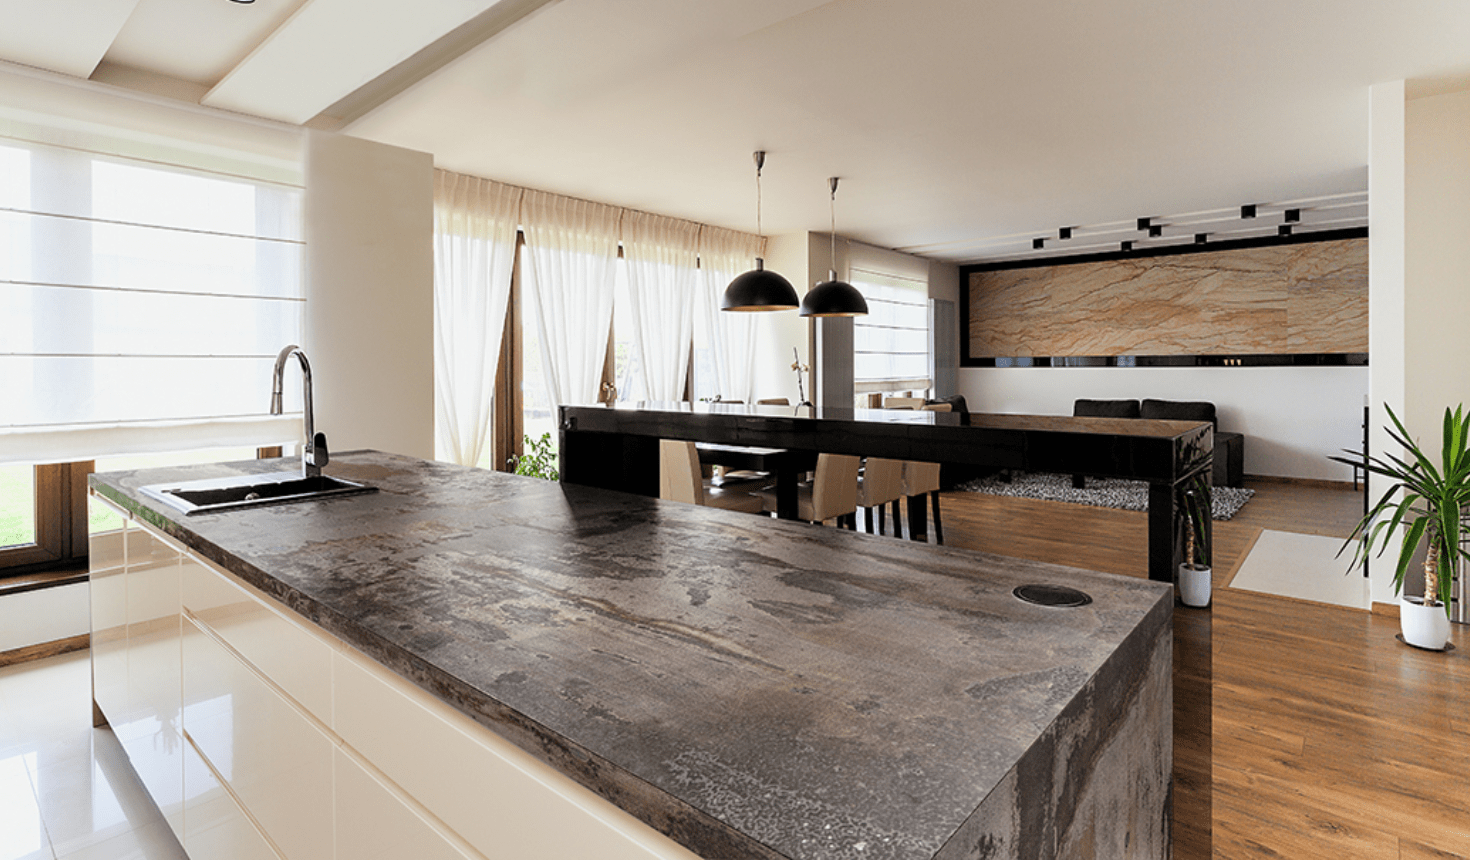 Dekton Trillium worktop by Cosentino inspired by the look of oxidized steel